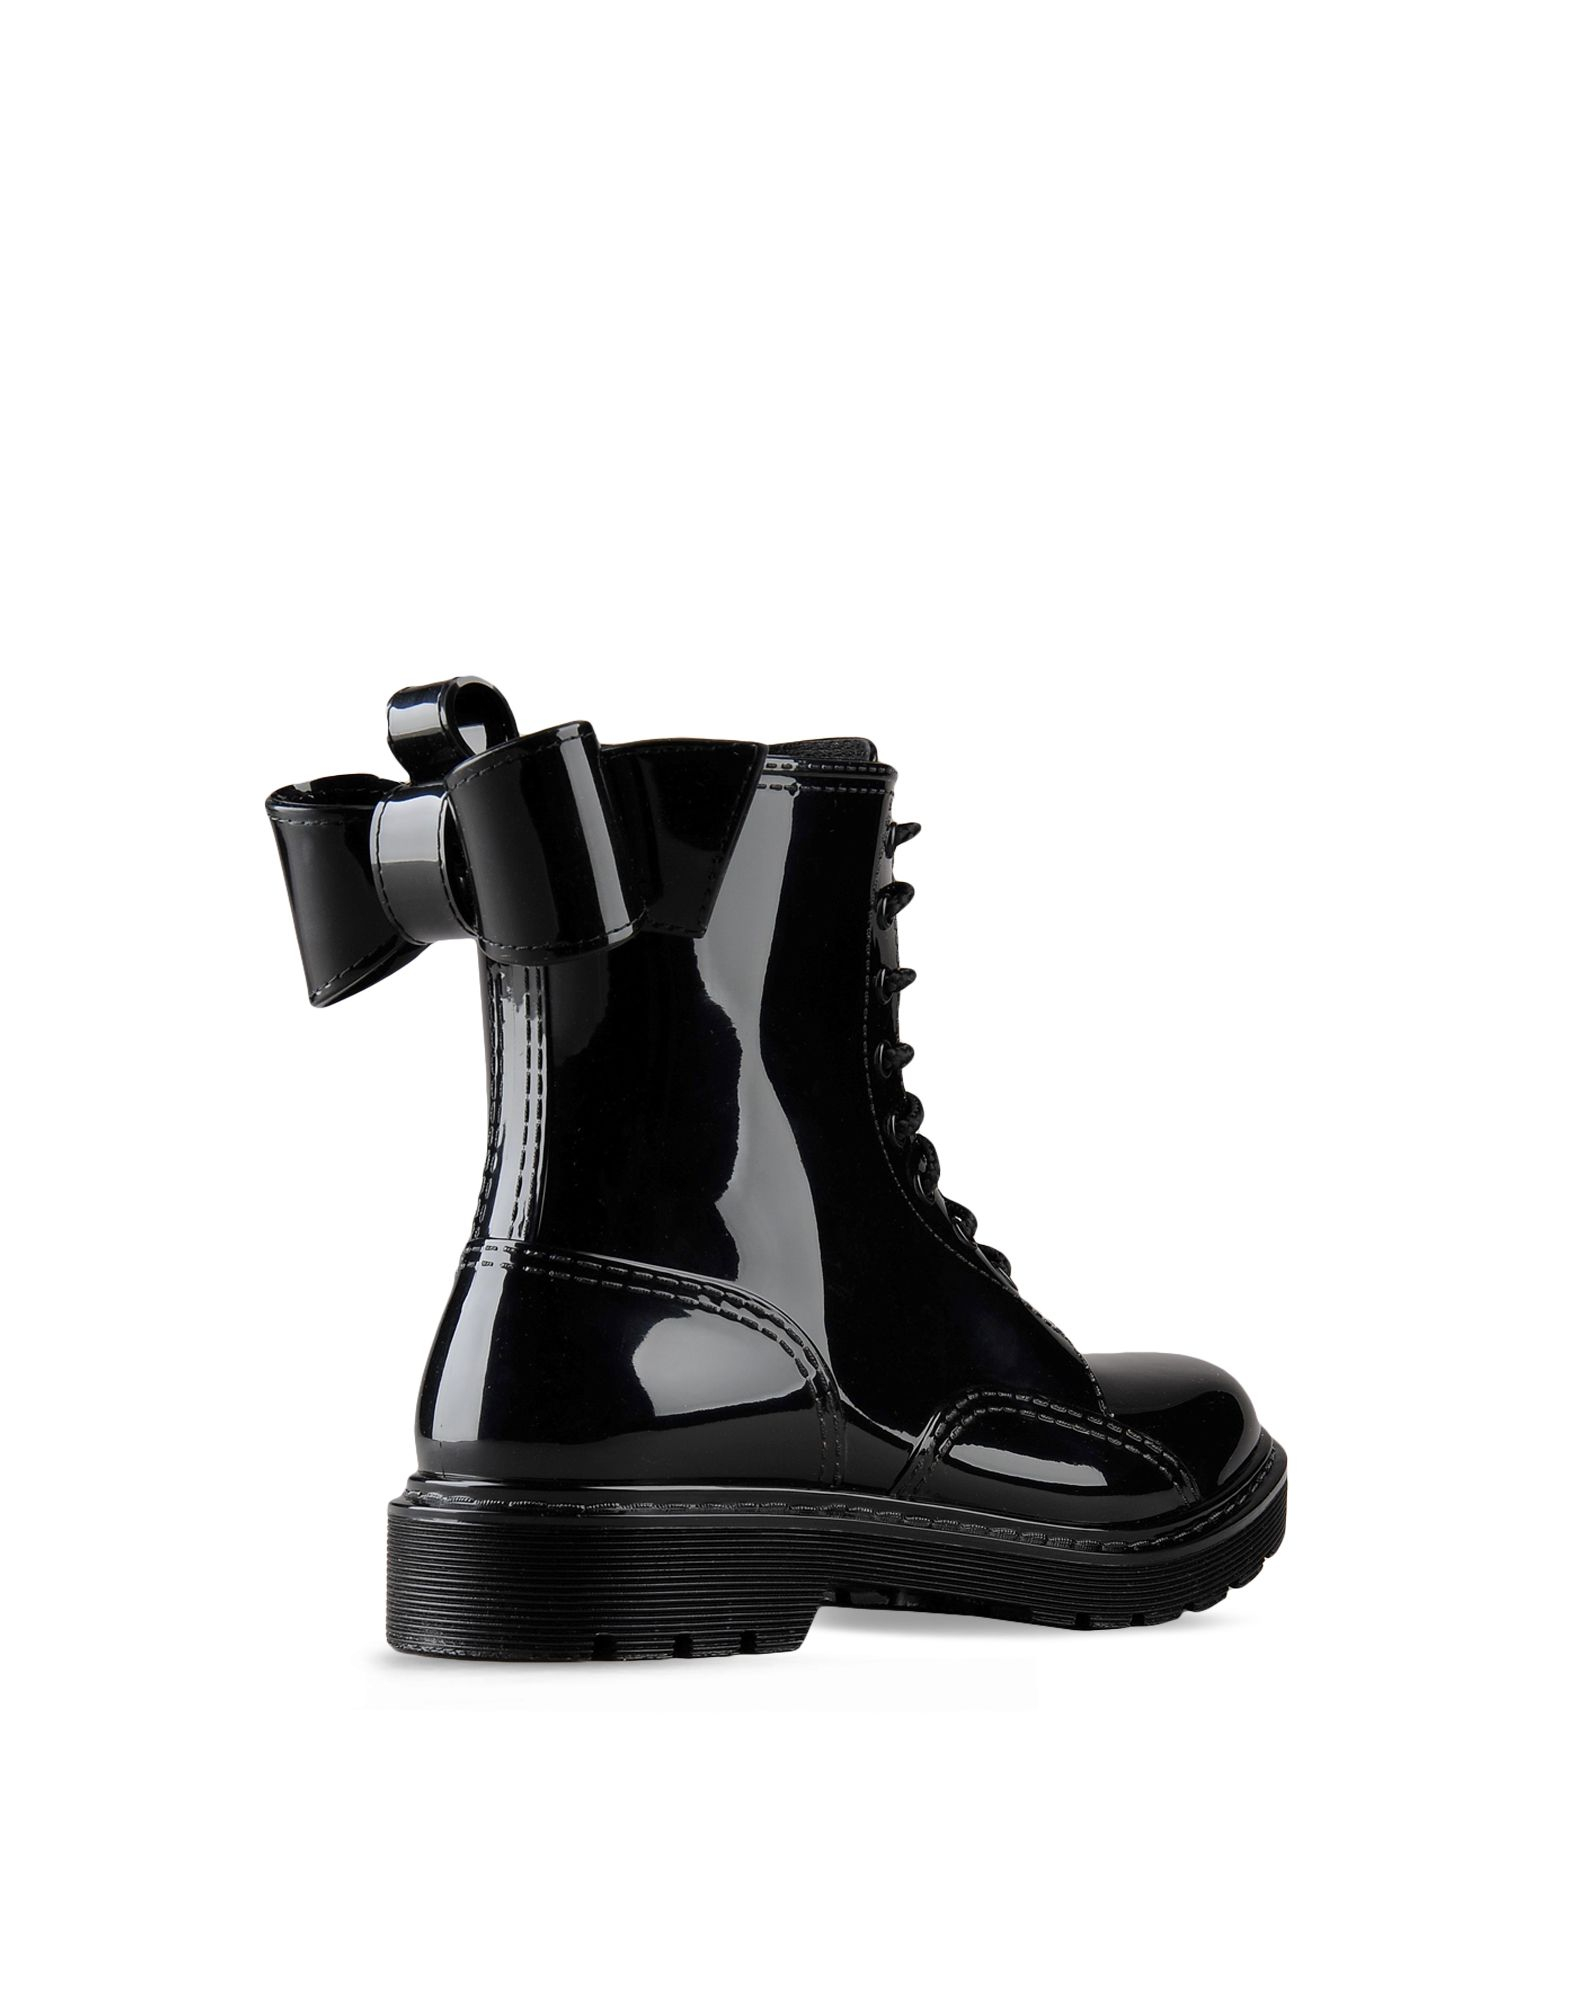 Red valentino Bow Rain Boot in Black | Lyst